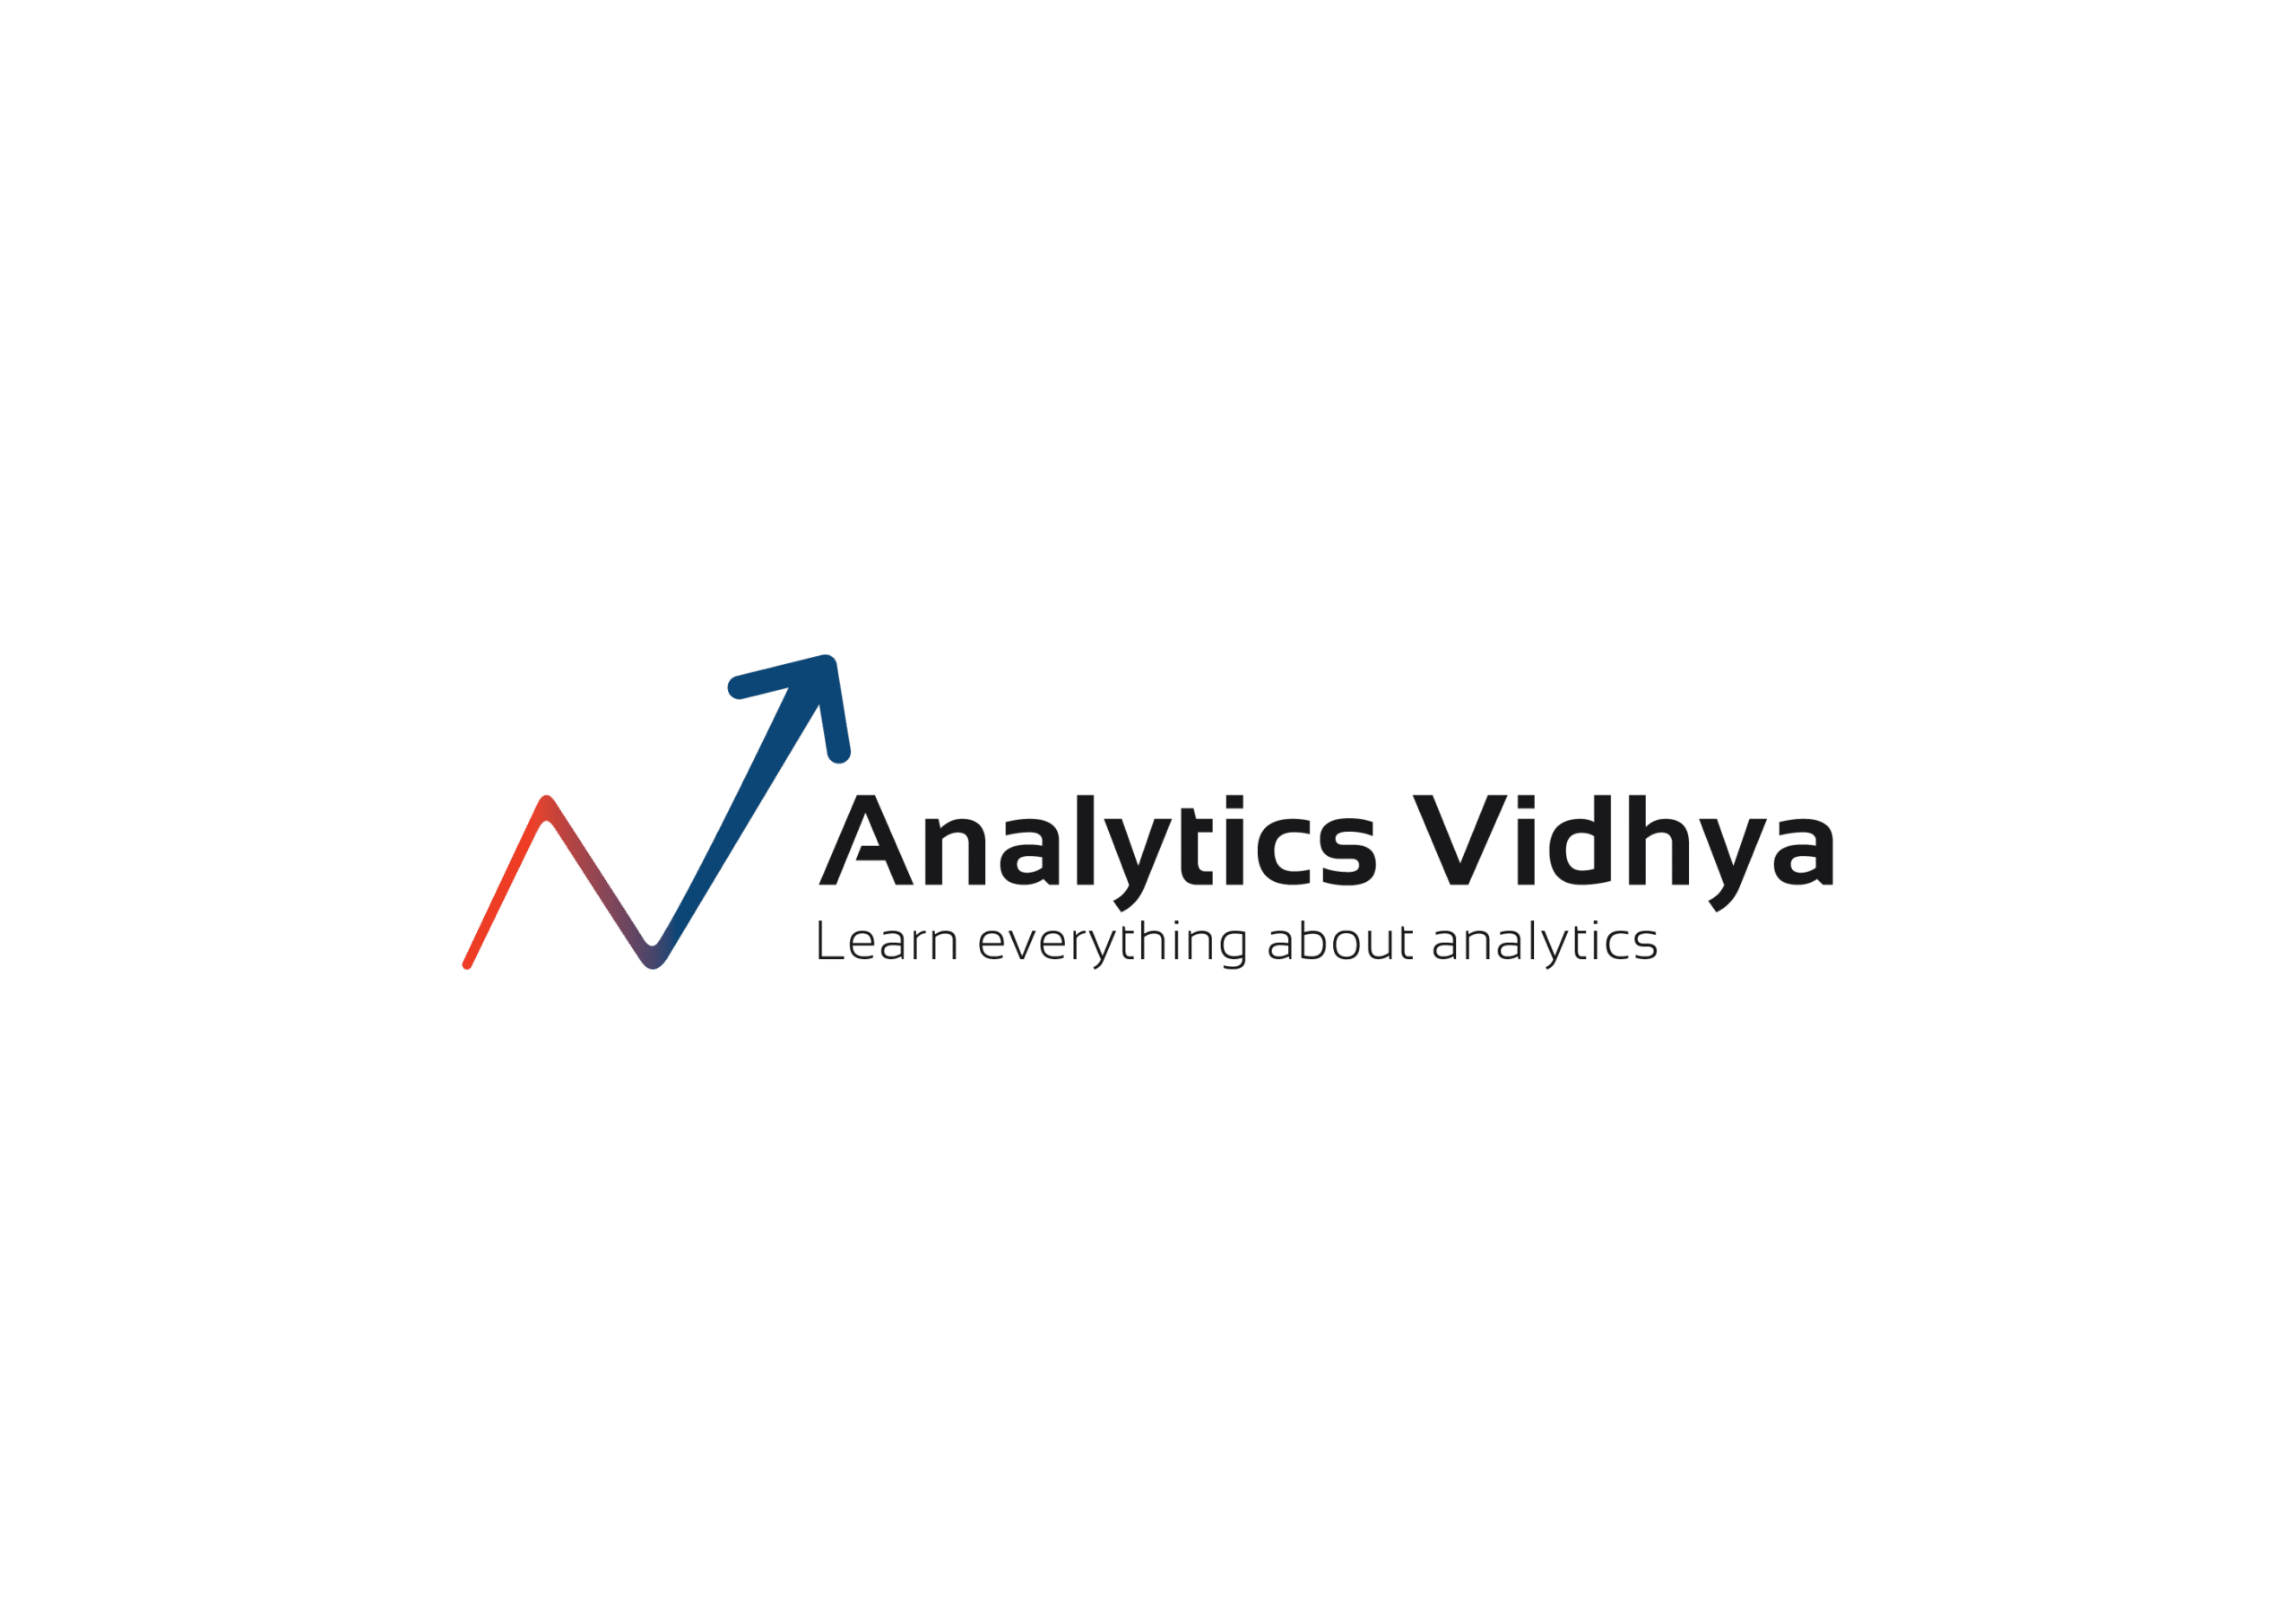 Analytics Vidhya Educon Pvt. Ltd